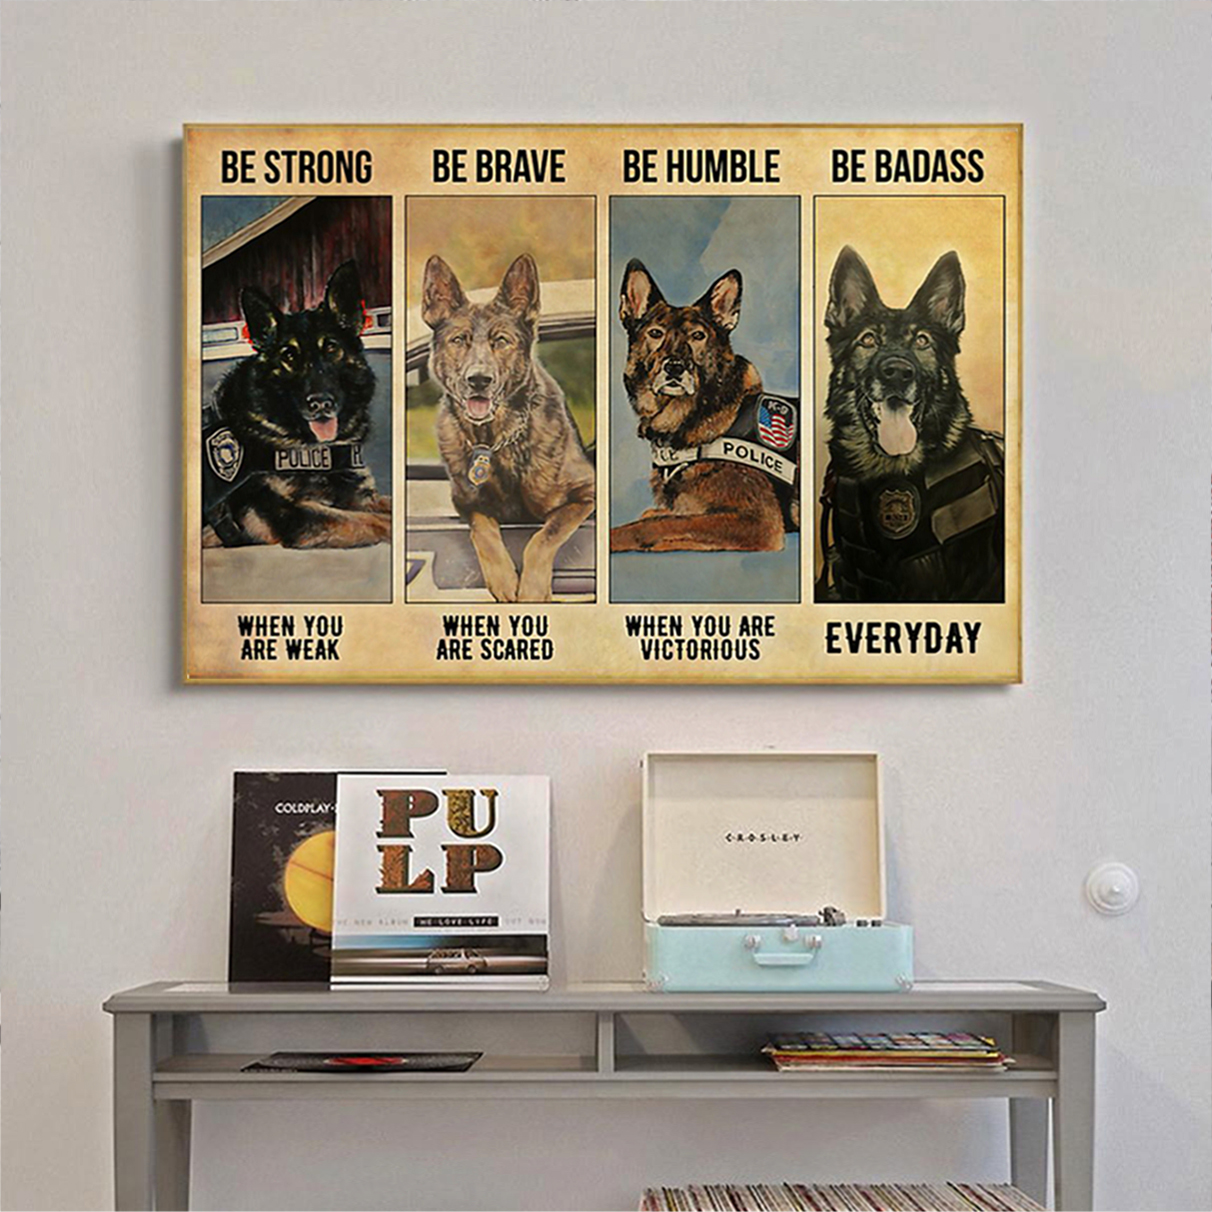 German shepherd police be strong be brave be humble be badass poster A2